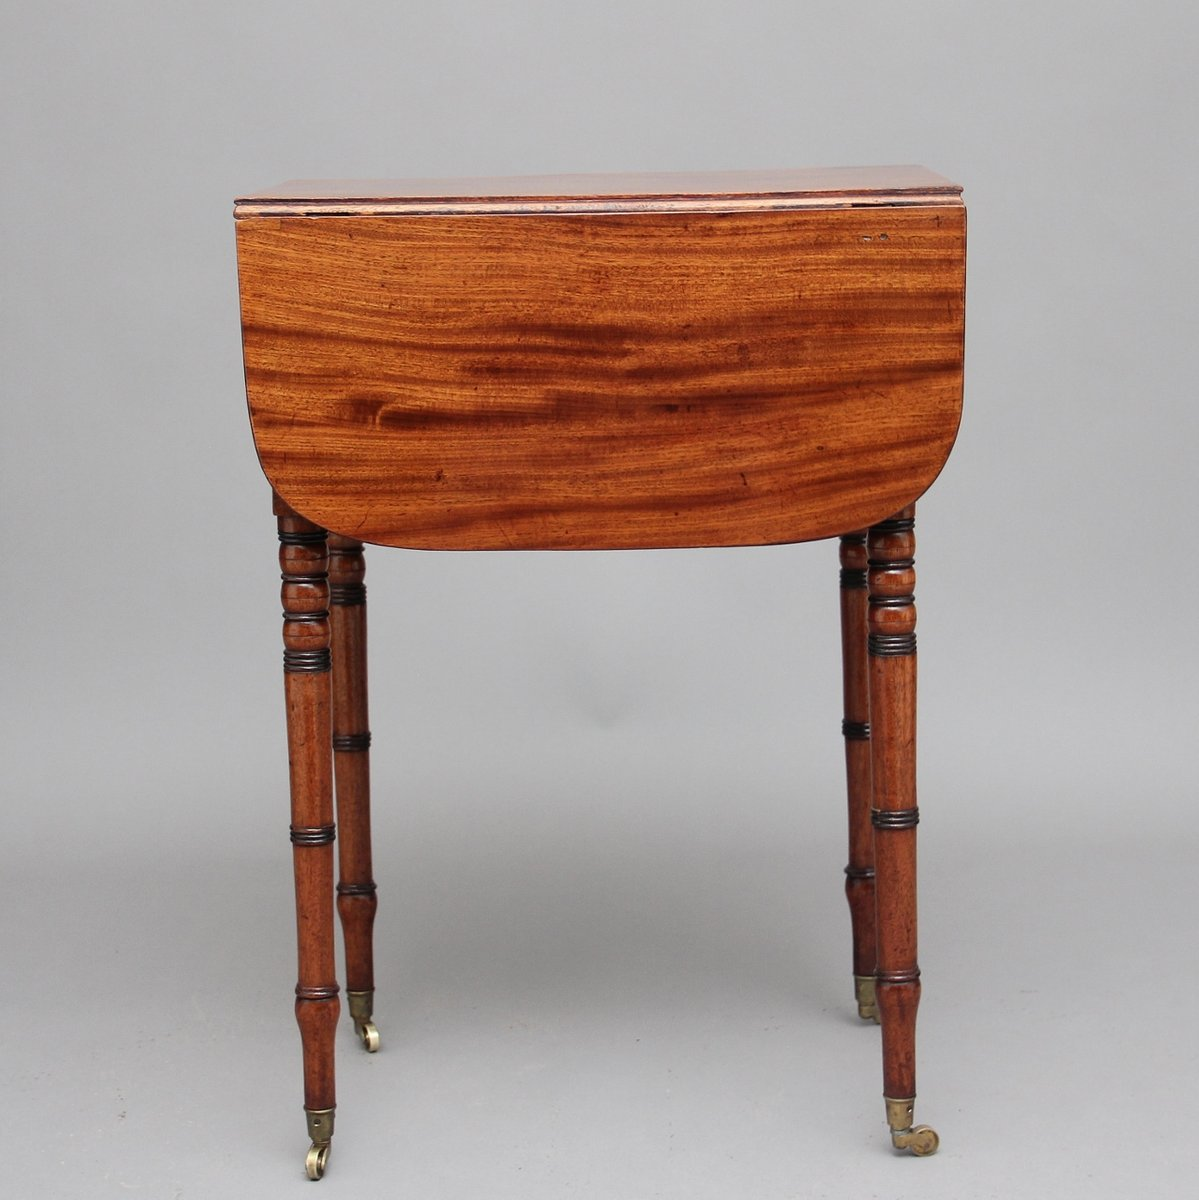 Antique Mahogany Drop Leaf Table 1840 For Sale At Pamono